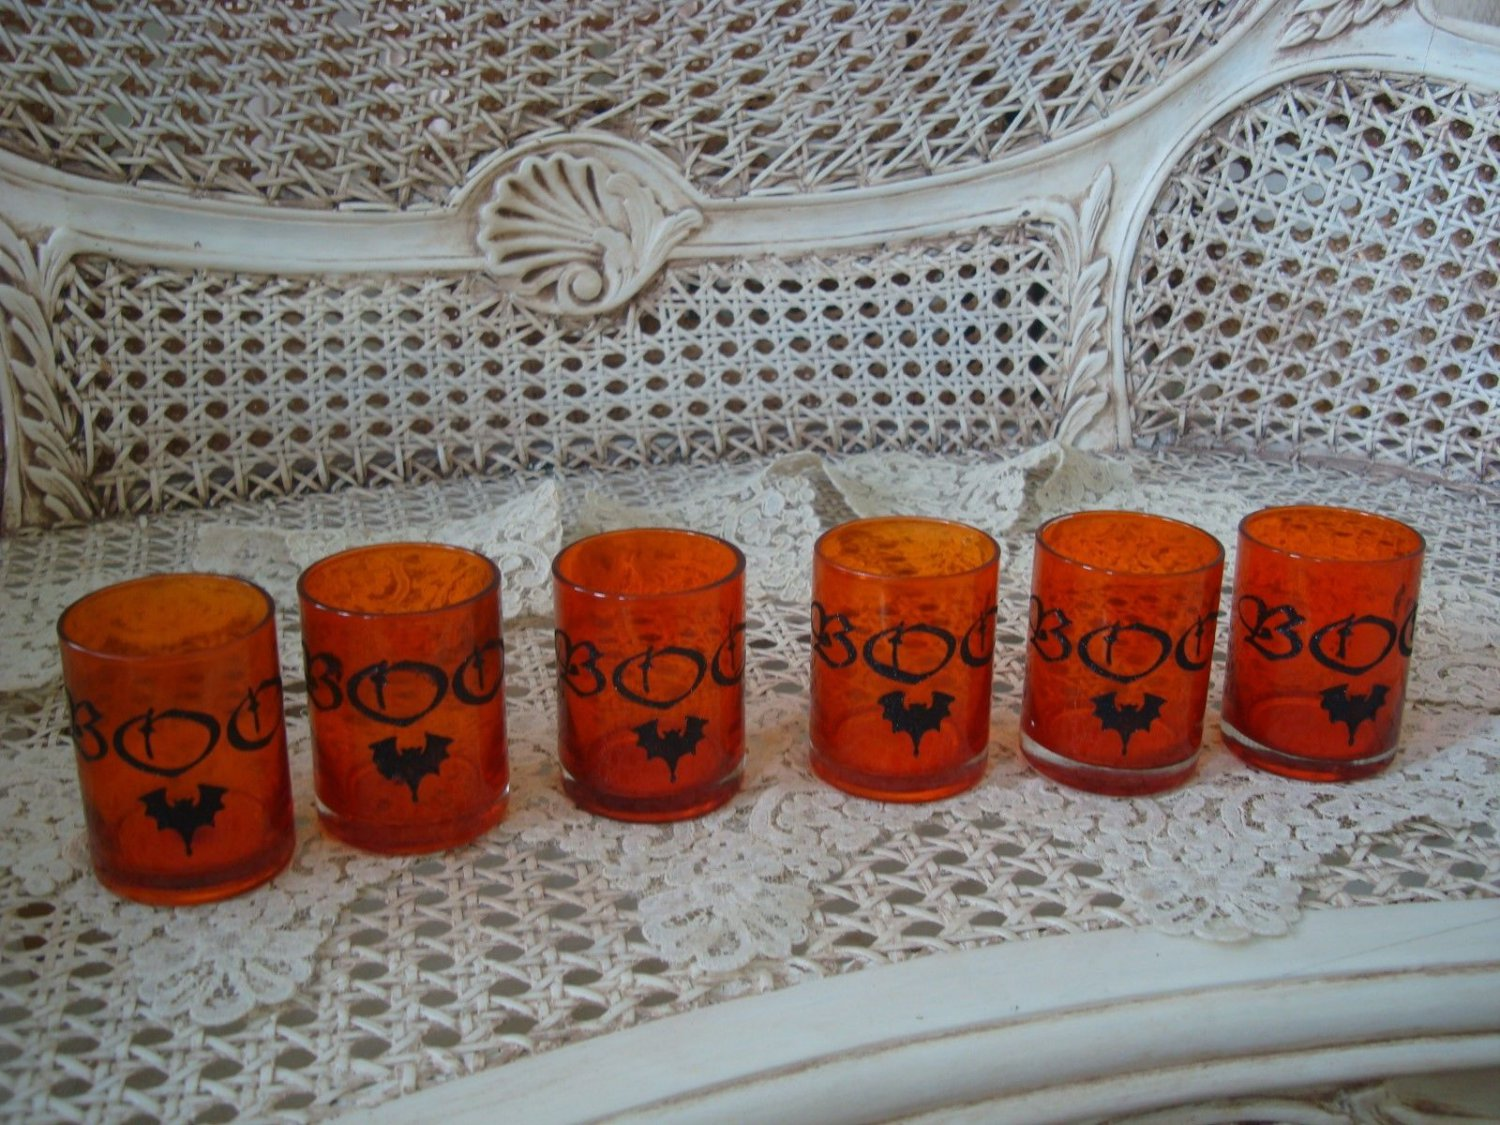 6 HALLOWEEN GLITTER BOO BAT ORANGE GLASS VOTIVE CANDLE HOLDERS **SO CUTE**